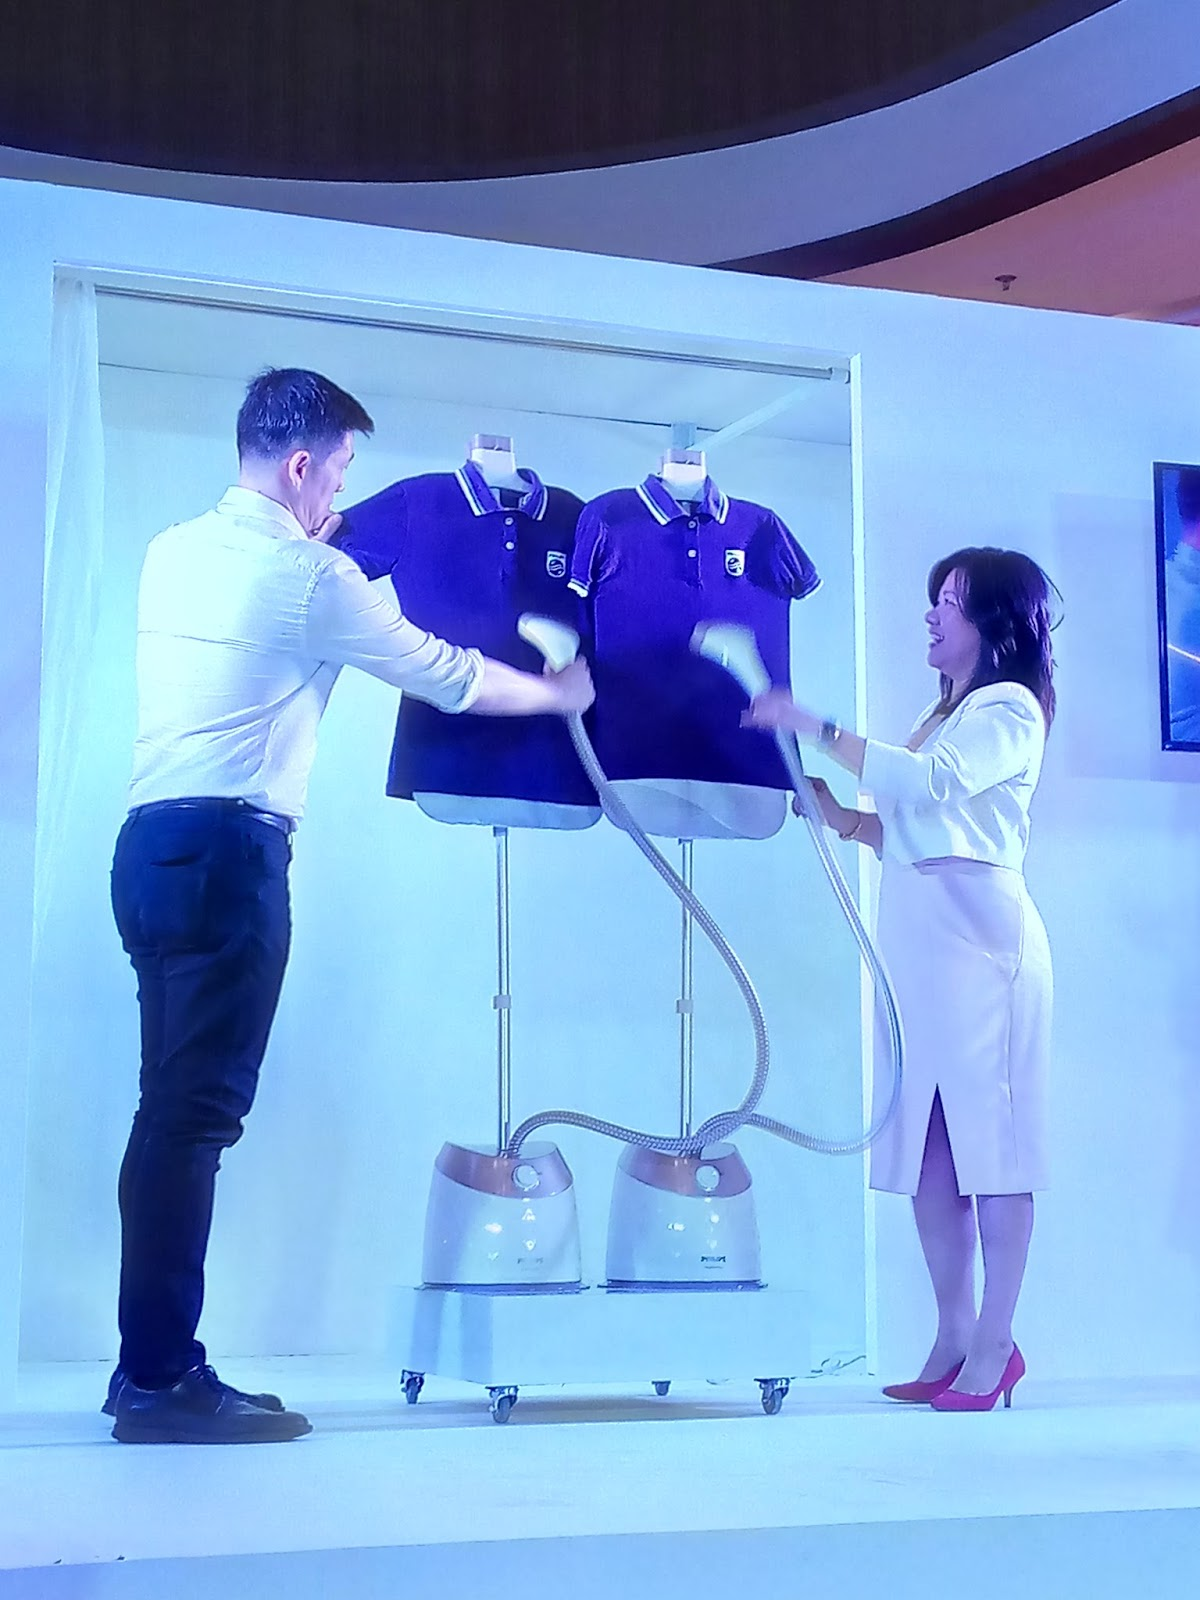 Philips Showcases Their Top Of The Lines Iron And Garment Steamer Gc504 Garnent Generates Penetrating Powerful Steam Pressure Enabling To Remove Creases With Only A Few Strokes Its Purestream Technology